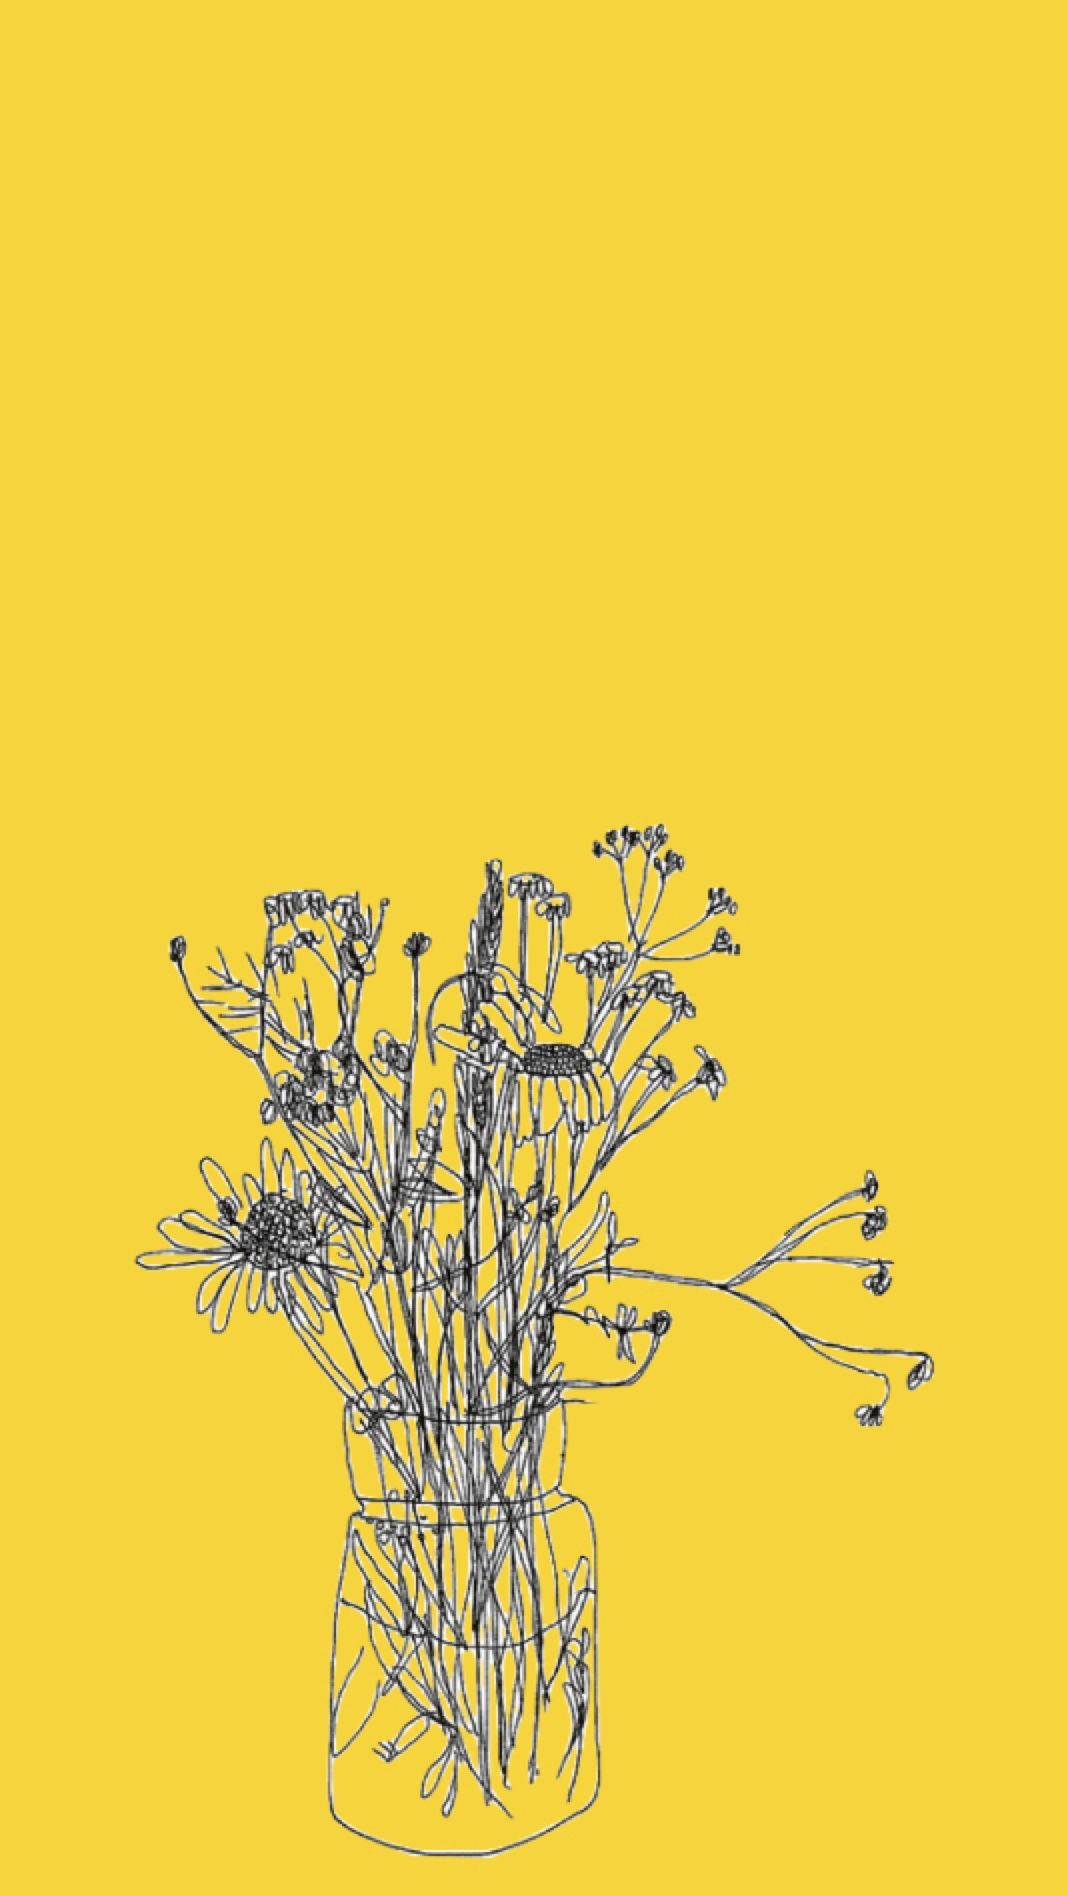 Iphone wallpaper tumblr fall - Overlay Tumblr Flower Iphone Wallpaperiphone